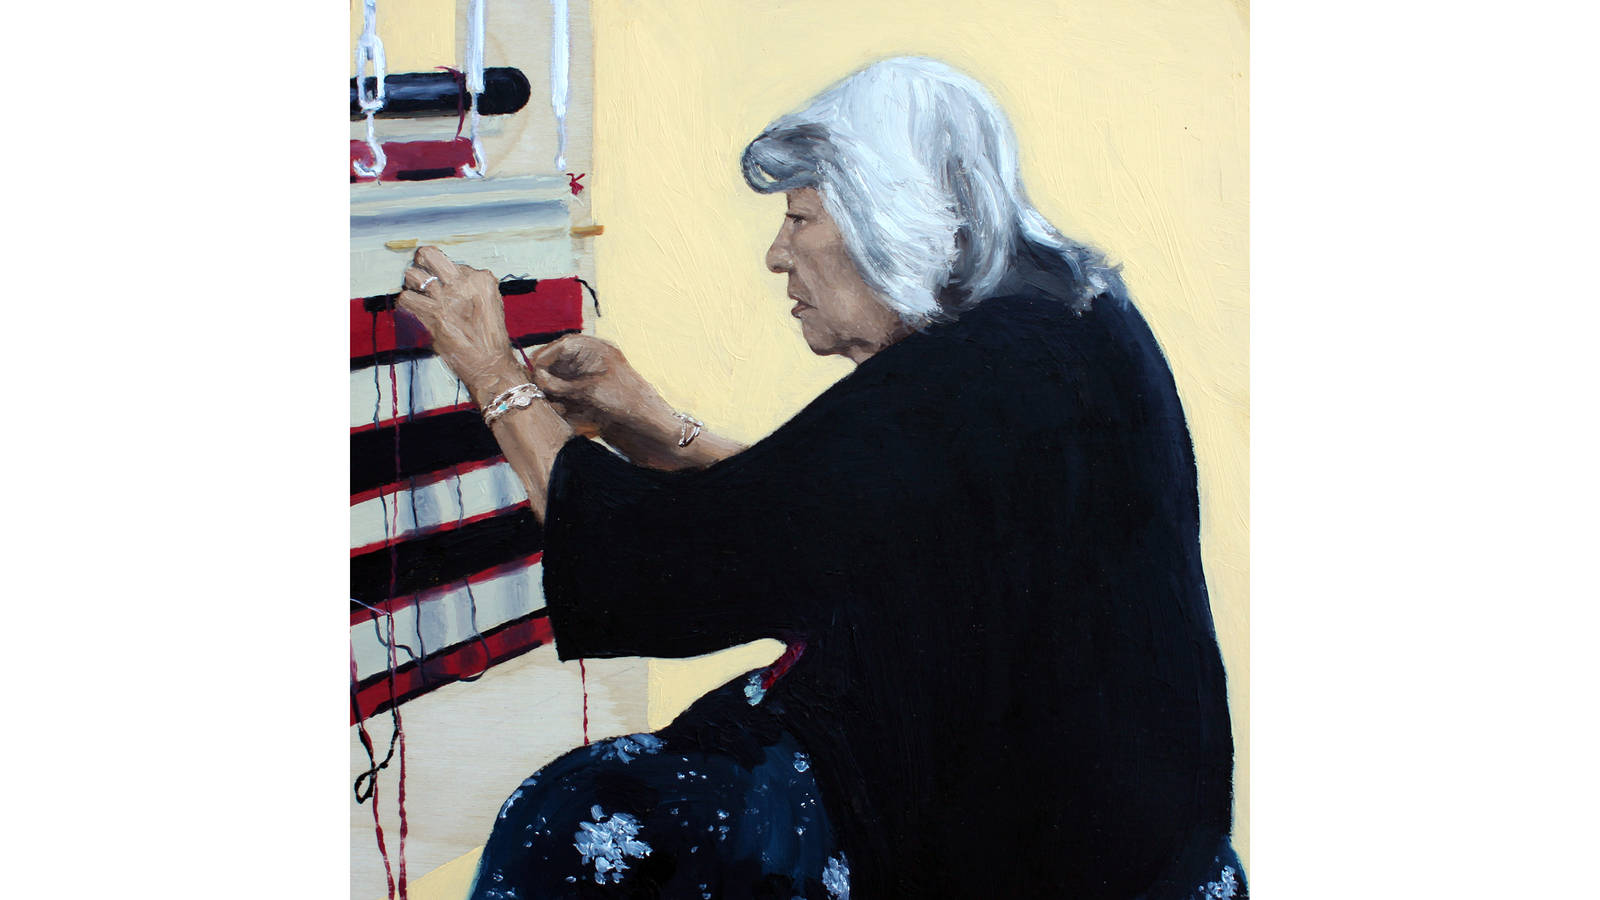 """<h3 style=""""text-align: center; padding: 50px;""""><span class=""""text-Intro-style"""">Ruby Hubbard, a Navajo weaver, demonstrates her craft at the Hubbell Trading Post National Historic Site. Oil on wood, 2019.</span></h3>"""